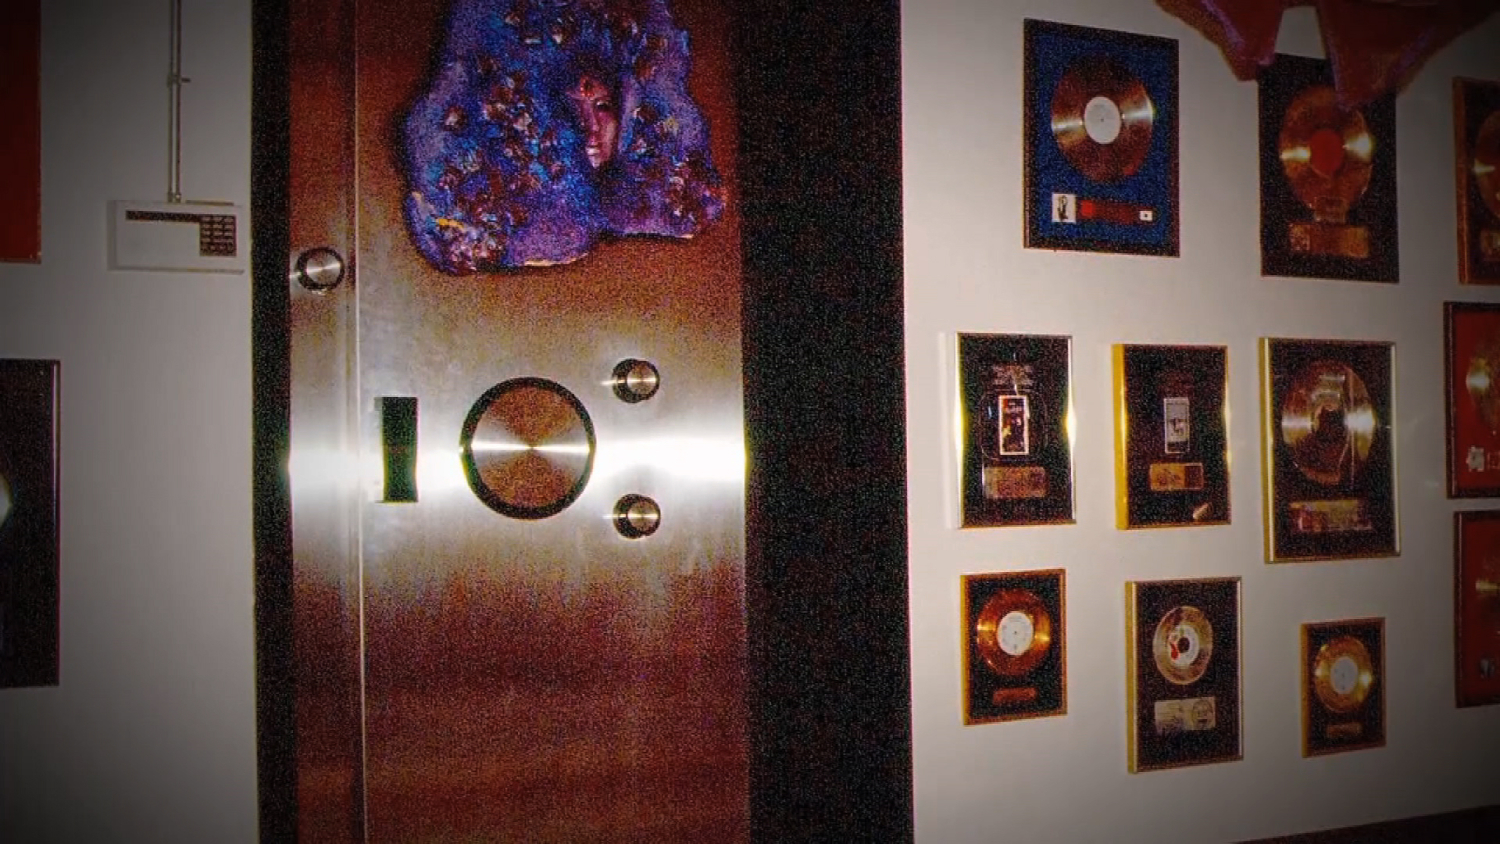 Outside of Prince's music vault